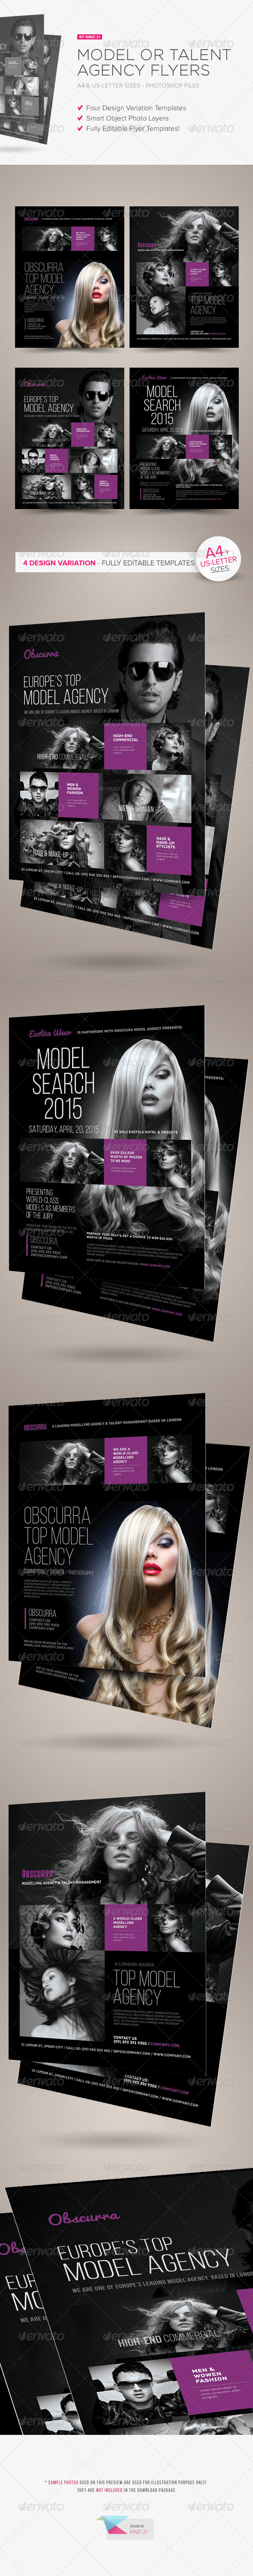 Model or Talent Agency Flyers - Corporate Flyers